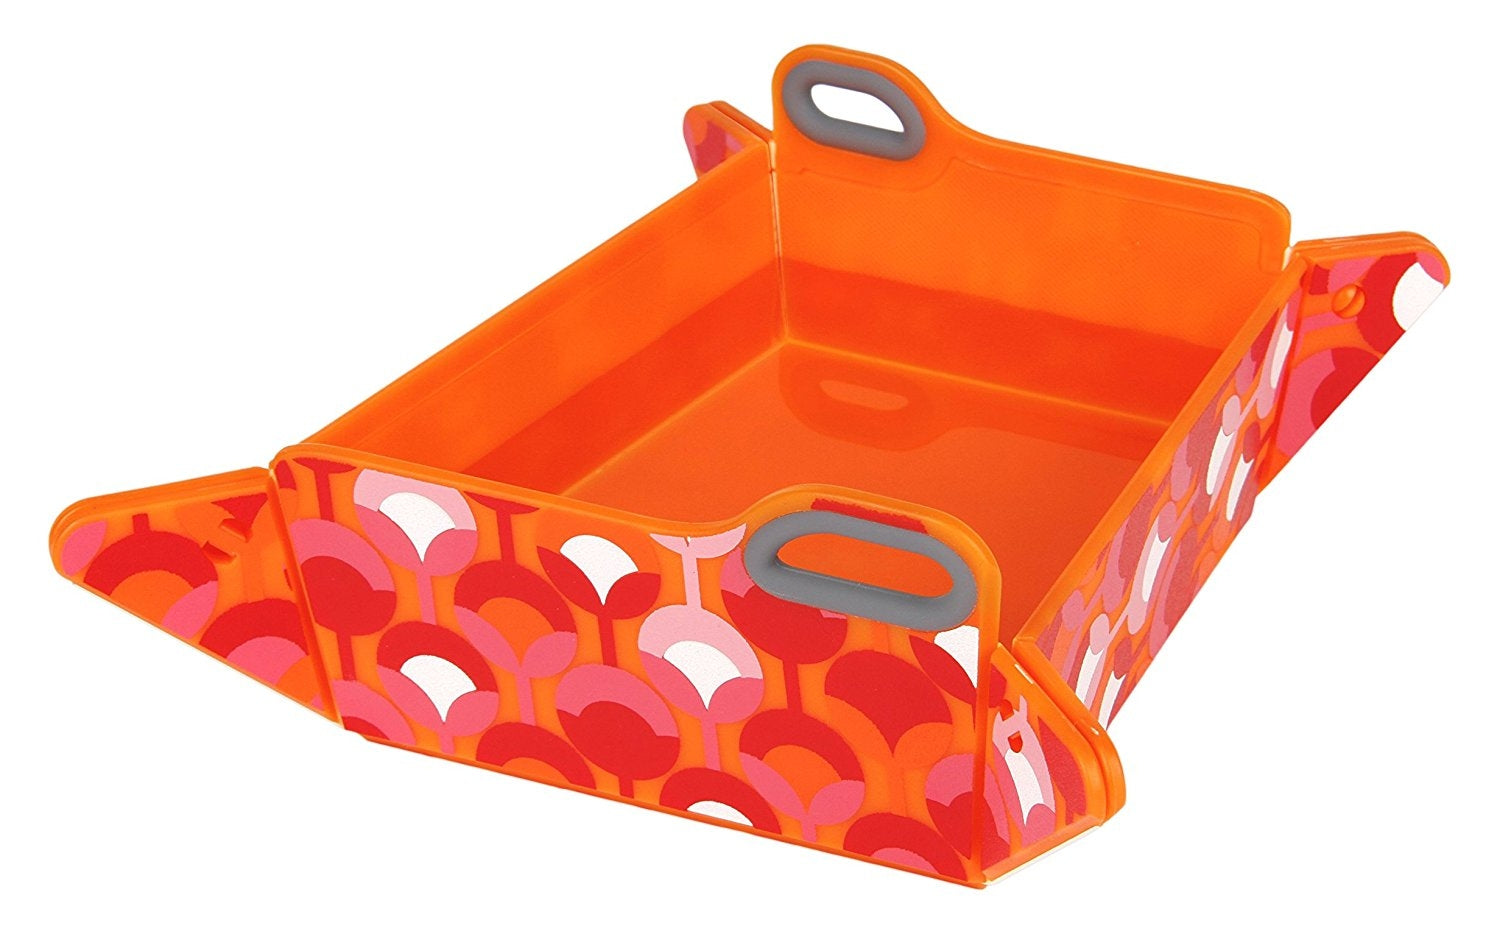 Orange Chop2bowl Dog and Cat Travel Collapsible Water and Food Bowl Snap on Chopping Board